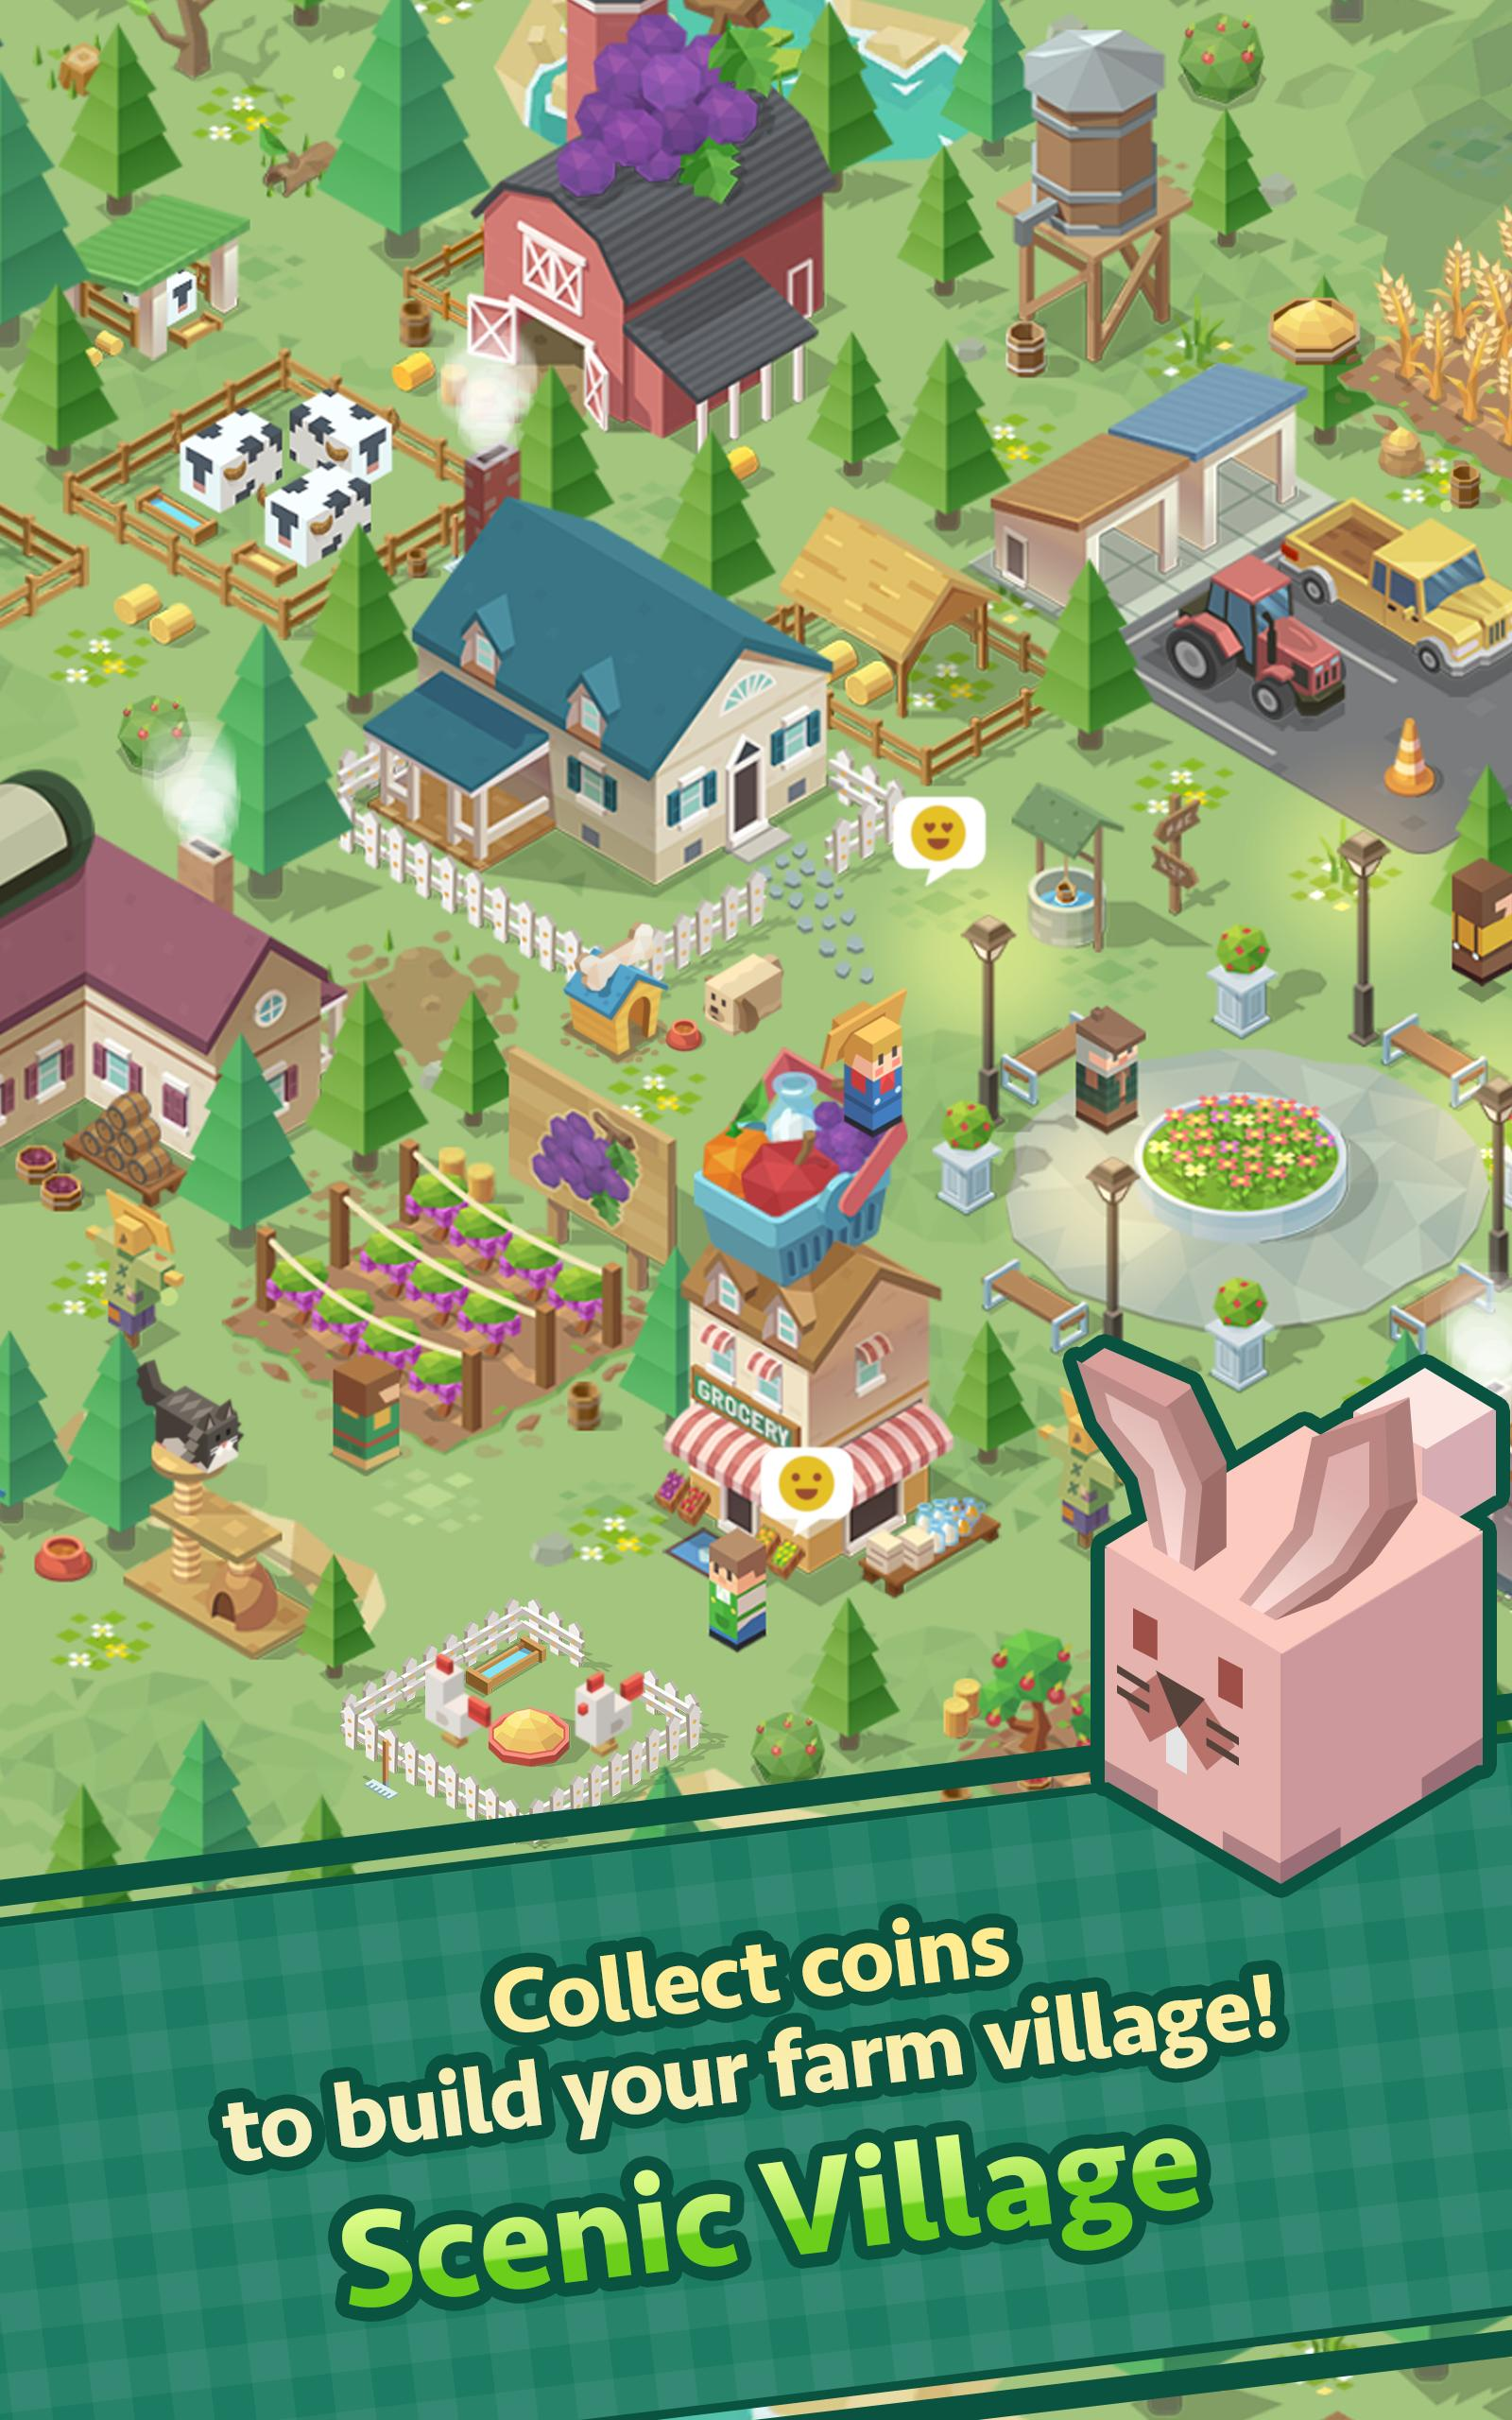 Solitaire Farm Village 1.6.0 Screenshot 5